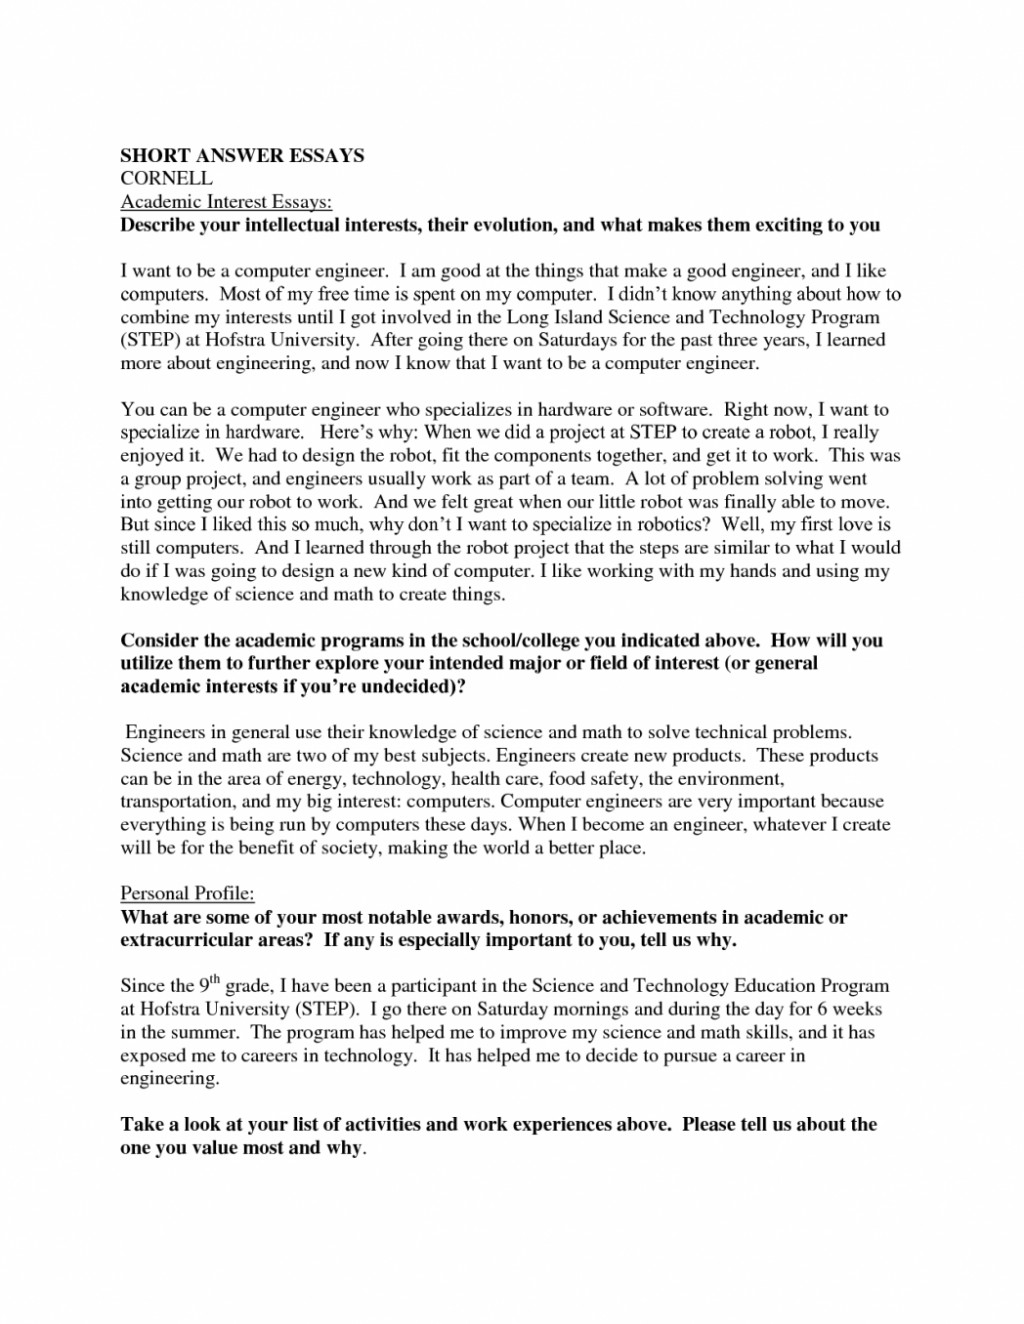 022 Cornell Essay Business School Application Essays Homework Writing Service Harvard Colleges 2 Columbia Stanfords Format Best Ie Sample 1048x1356 Stupendous Mba Examples Engineering That Worked Large